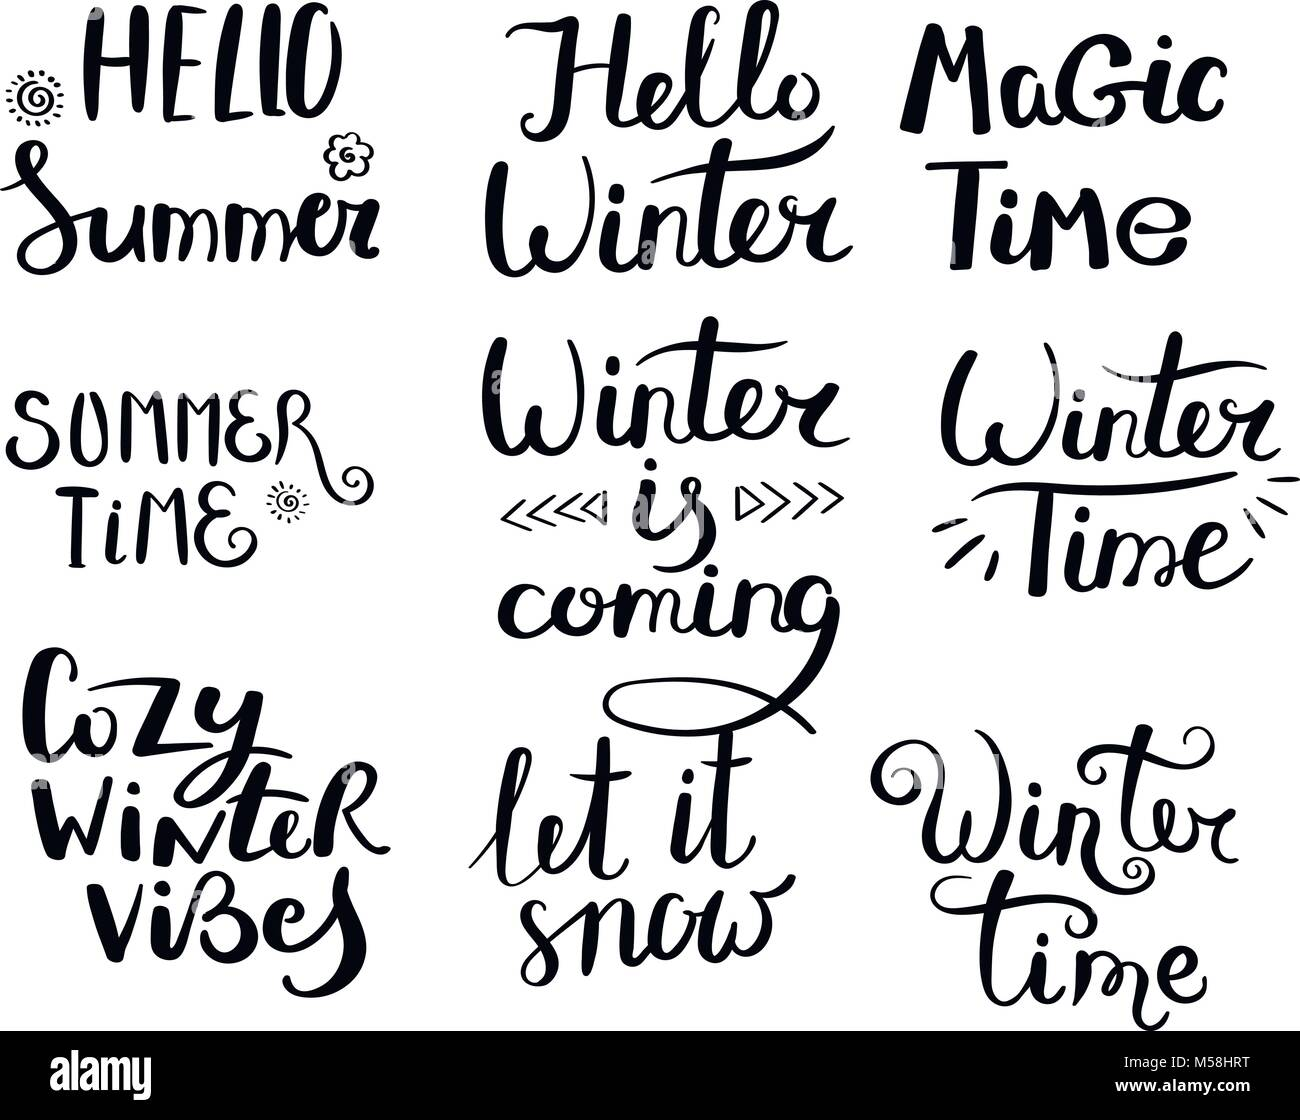 Season greetings set of hand drawn vector lettering phrases modern season greetings set of hand drawn vector lettering phrases modern motivating calligraphy decor for wall poster prints cards t shirts and other m4hsunfo